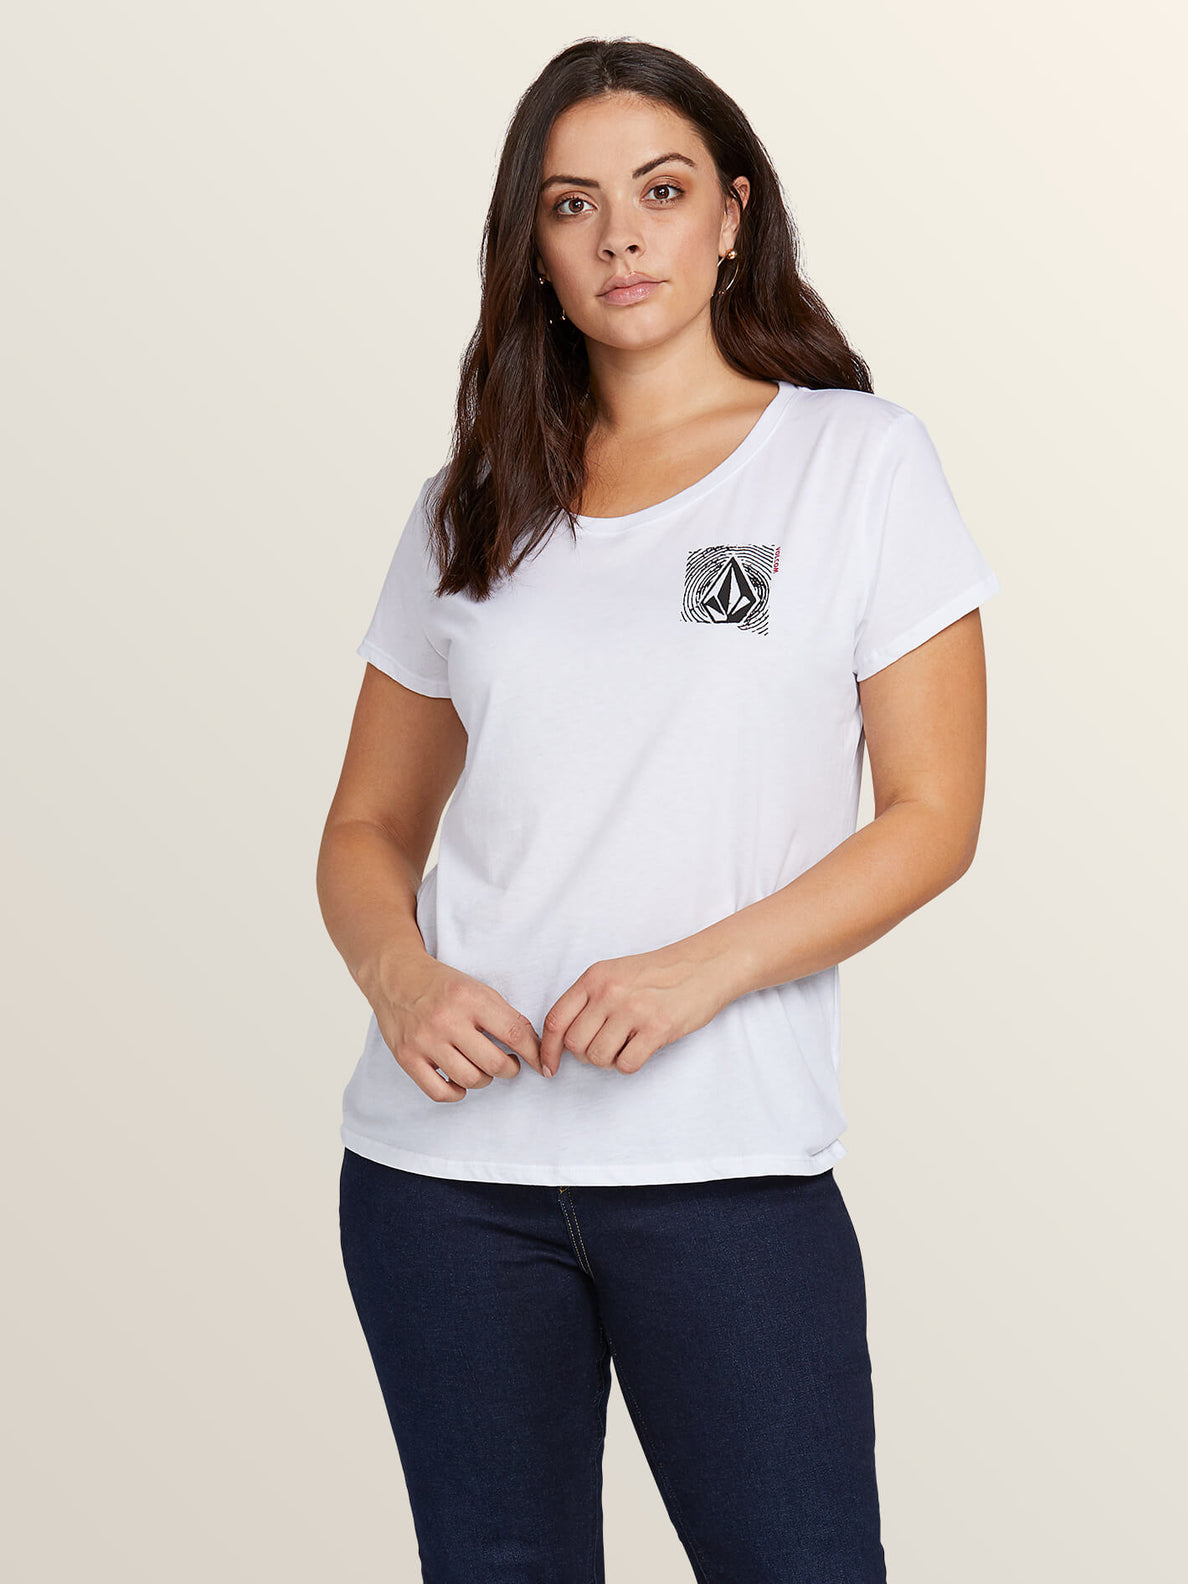 Easy Babe Rad 2 Tee In White, Front Extended Size View